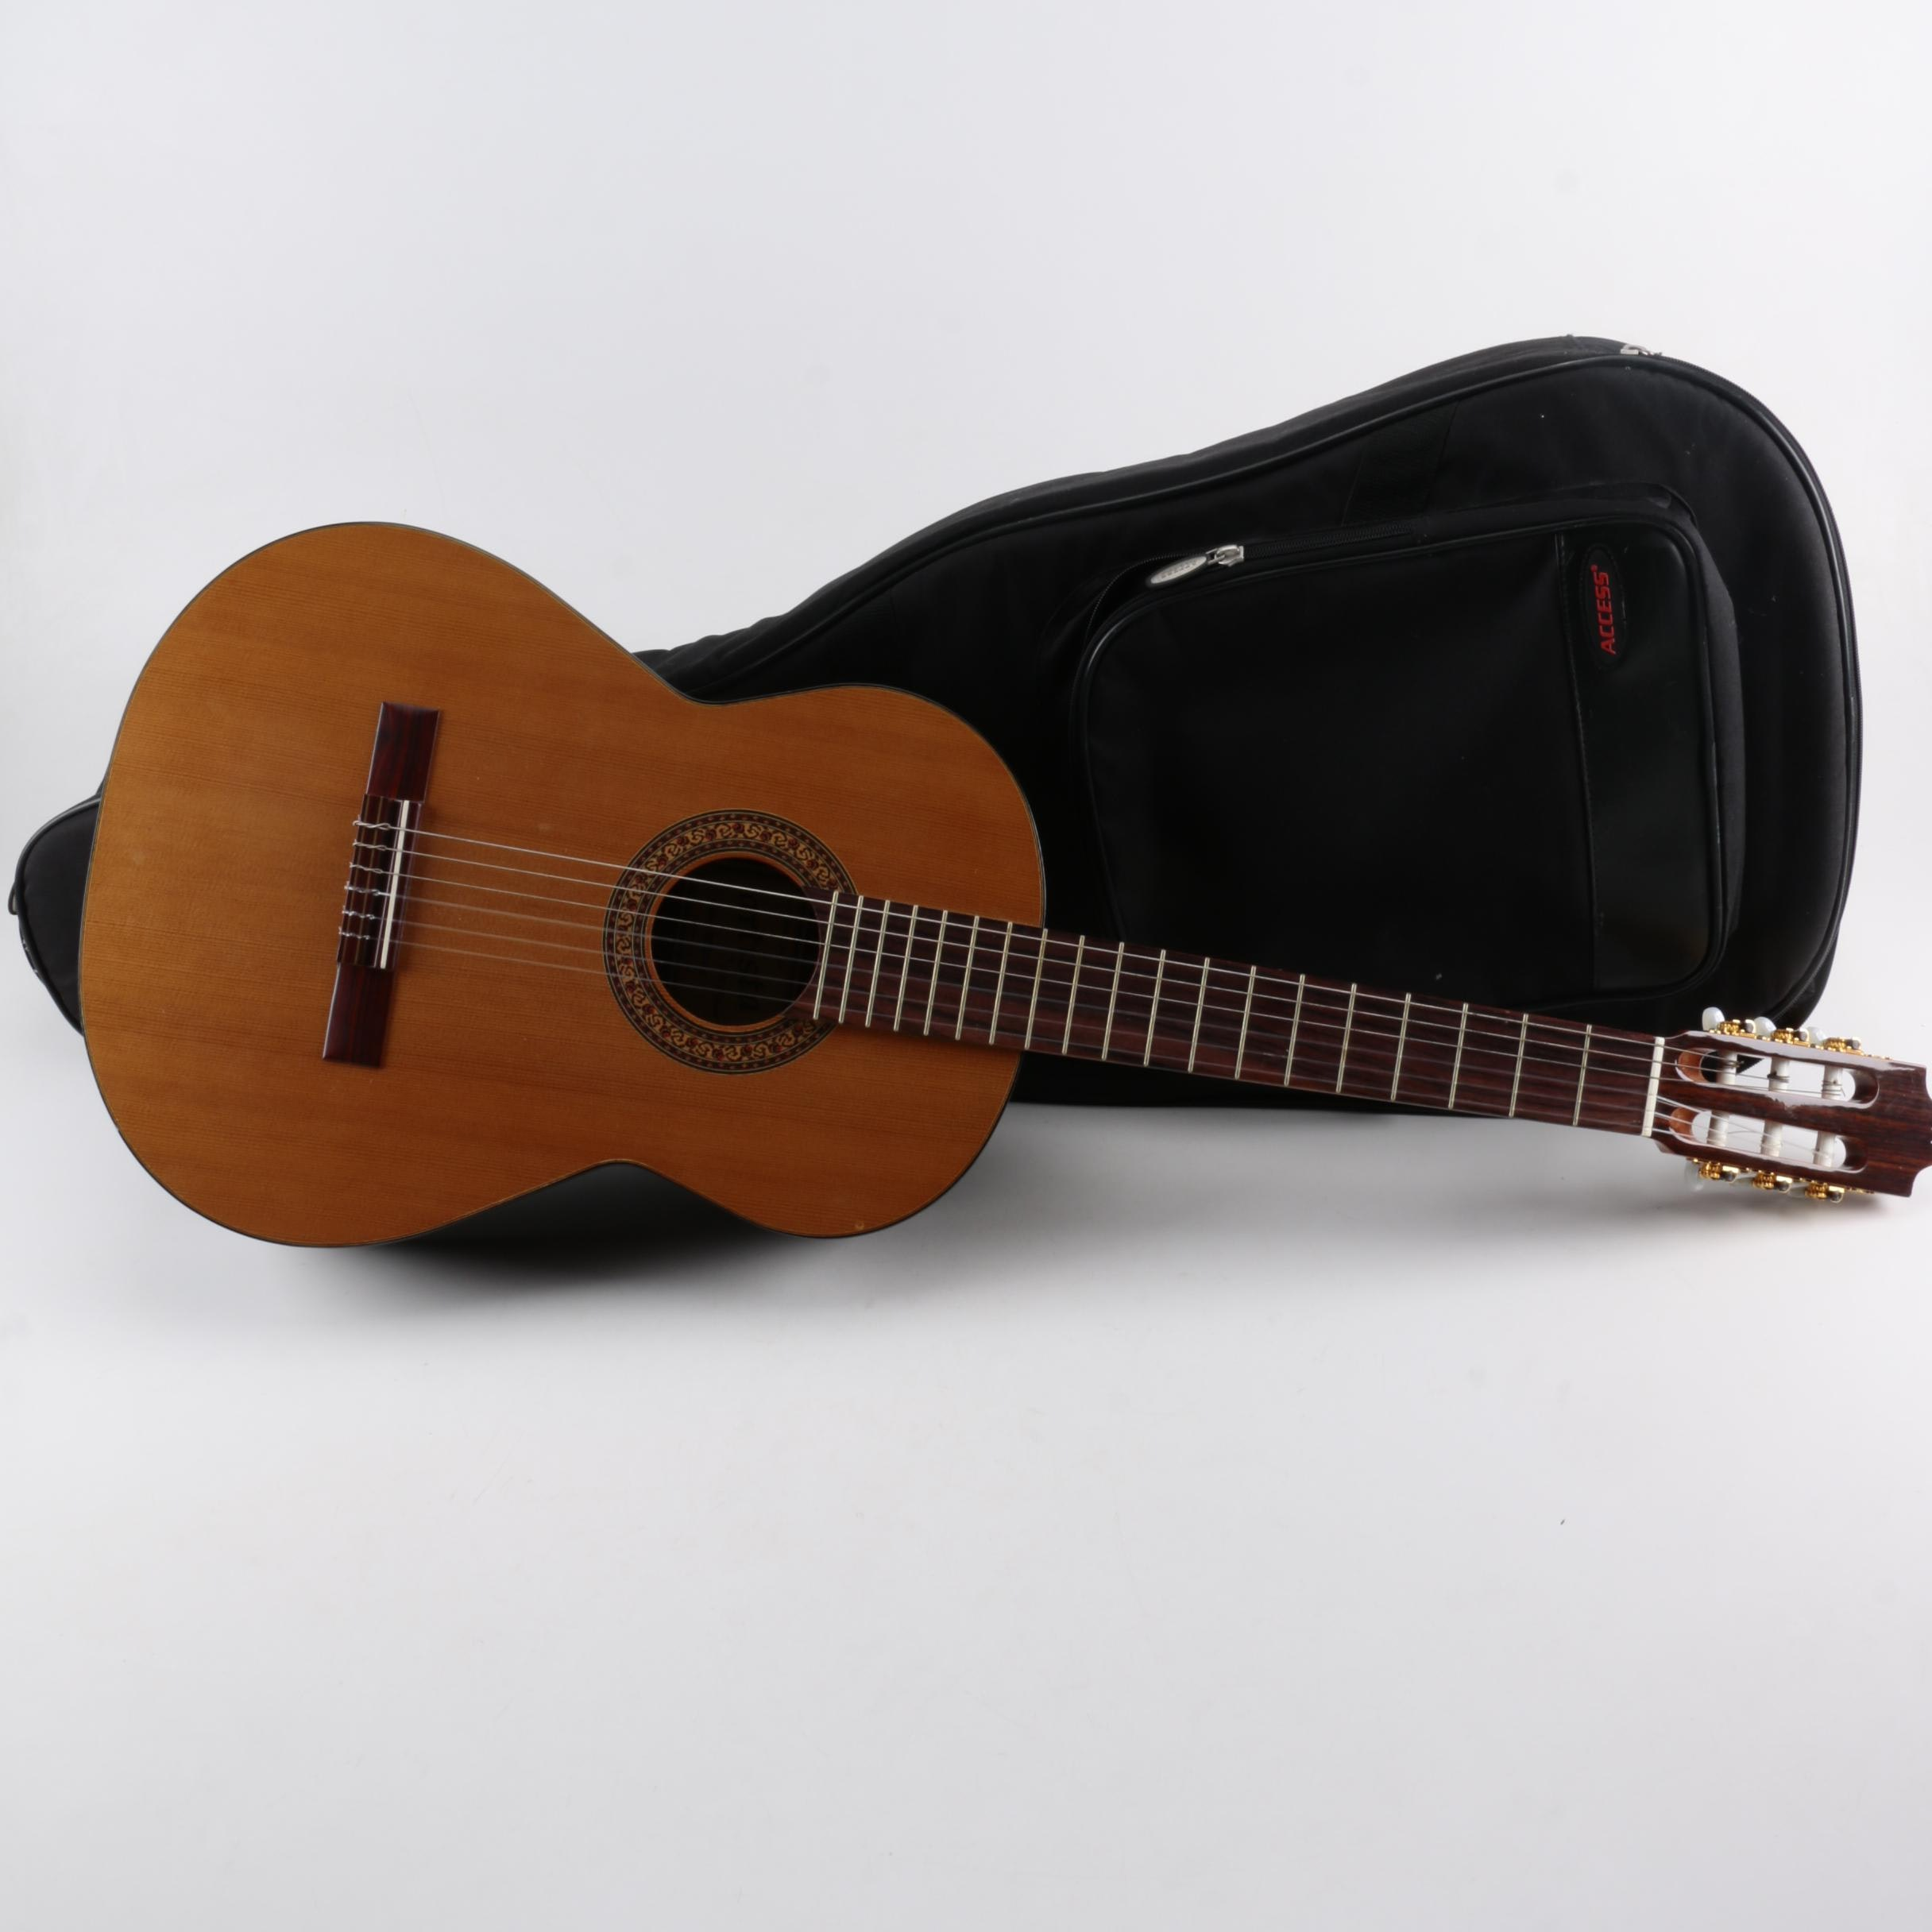 Spanish Artista by J. B. Player Segovia Classical Guitar With Case